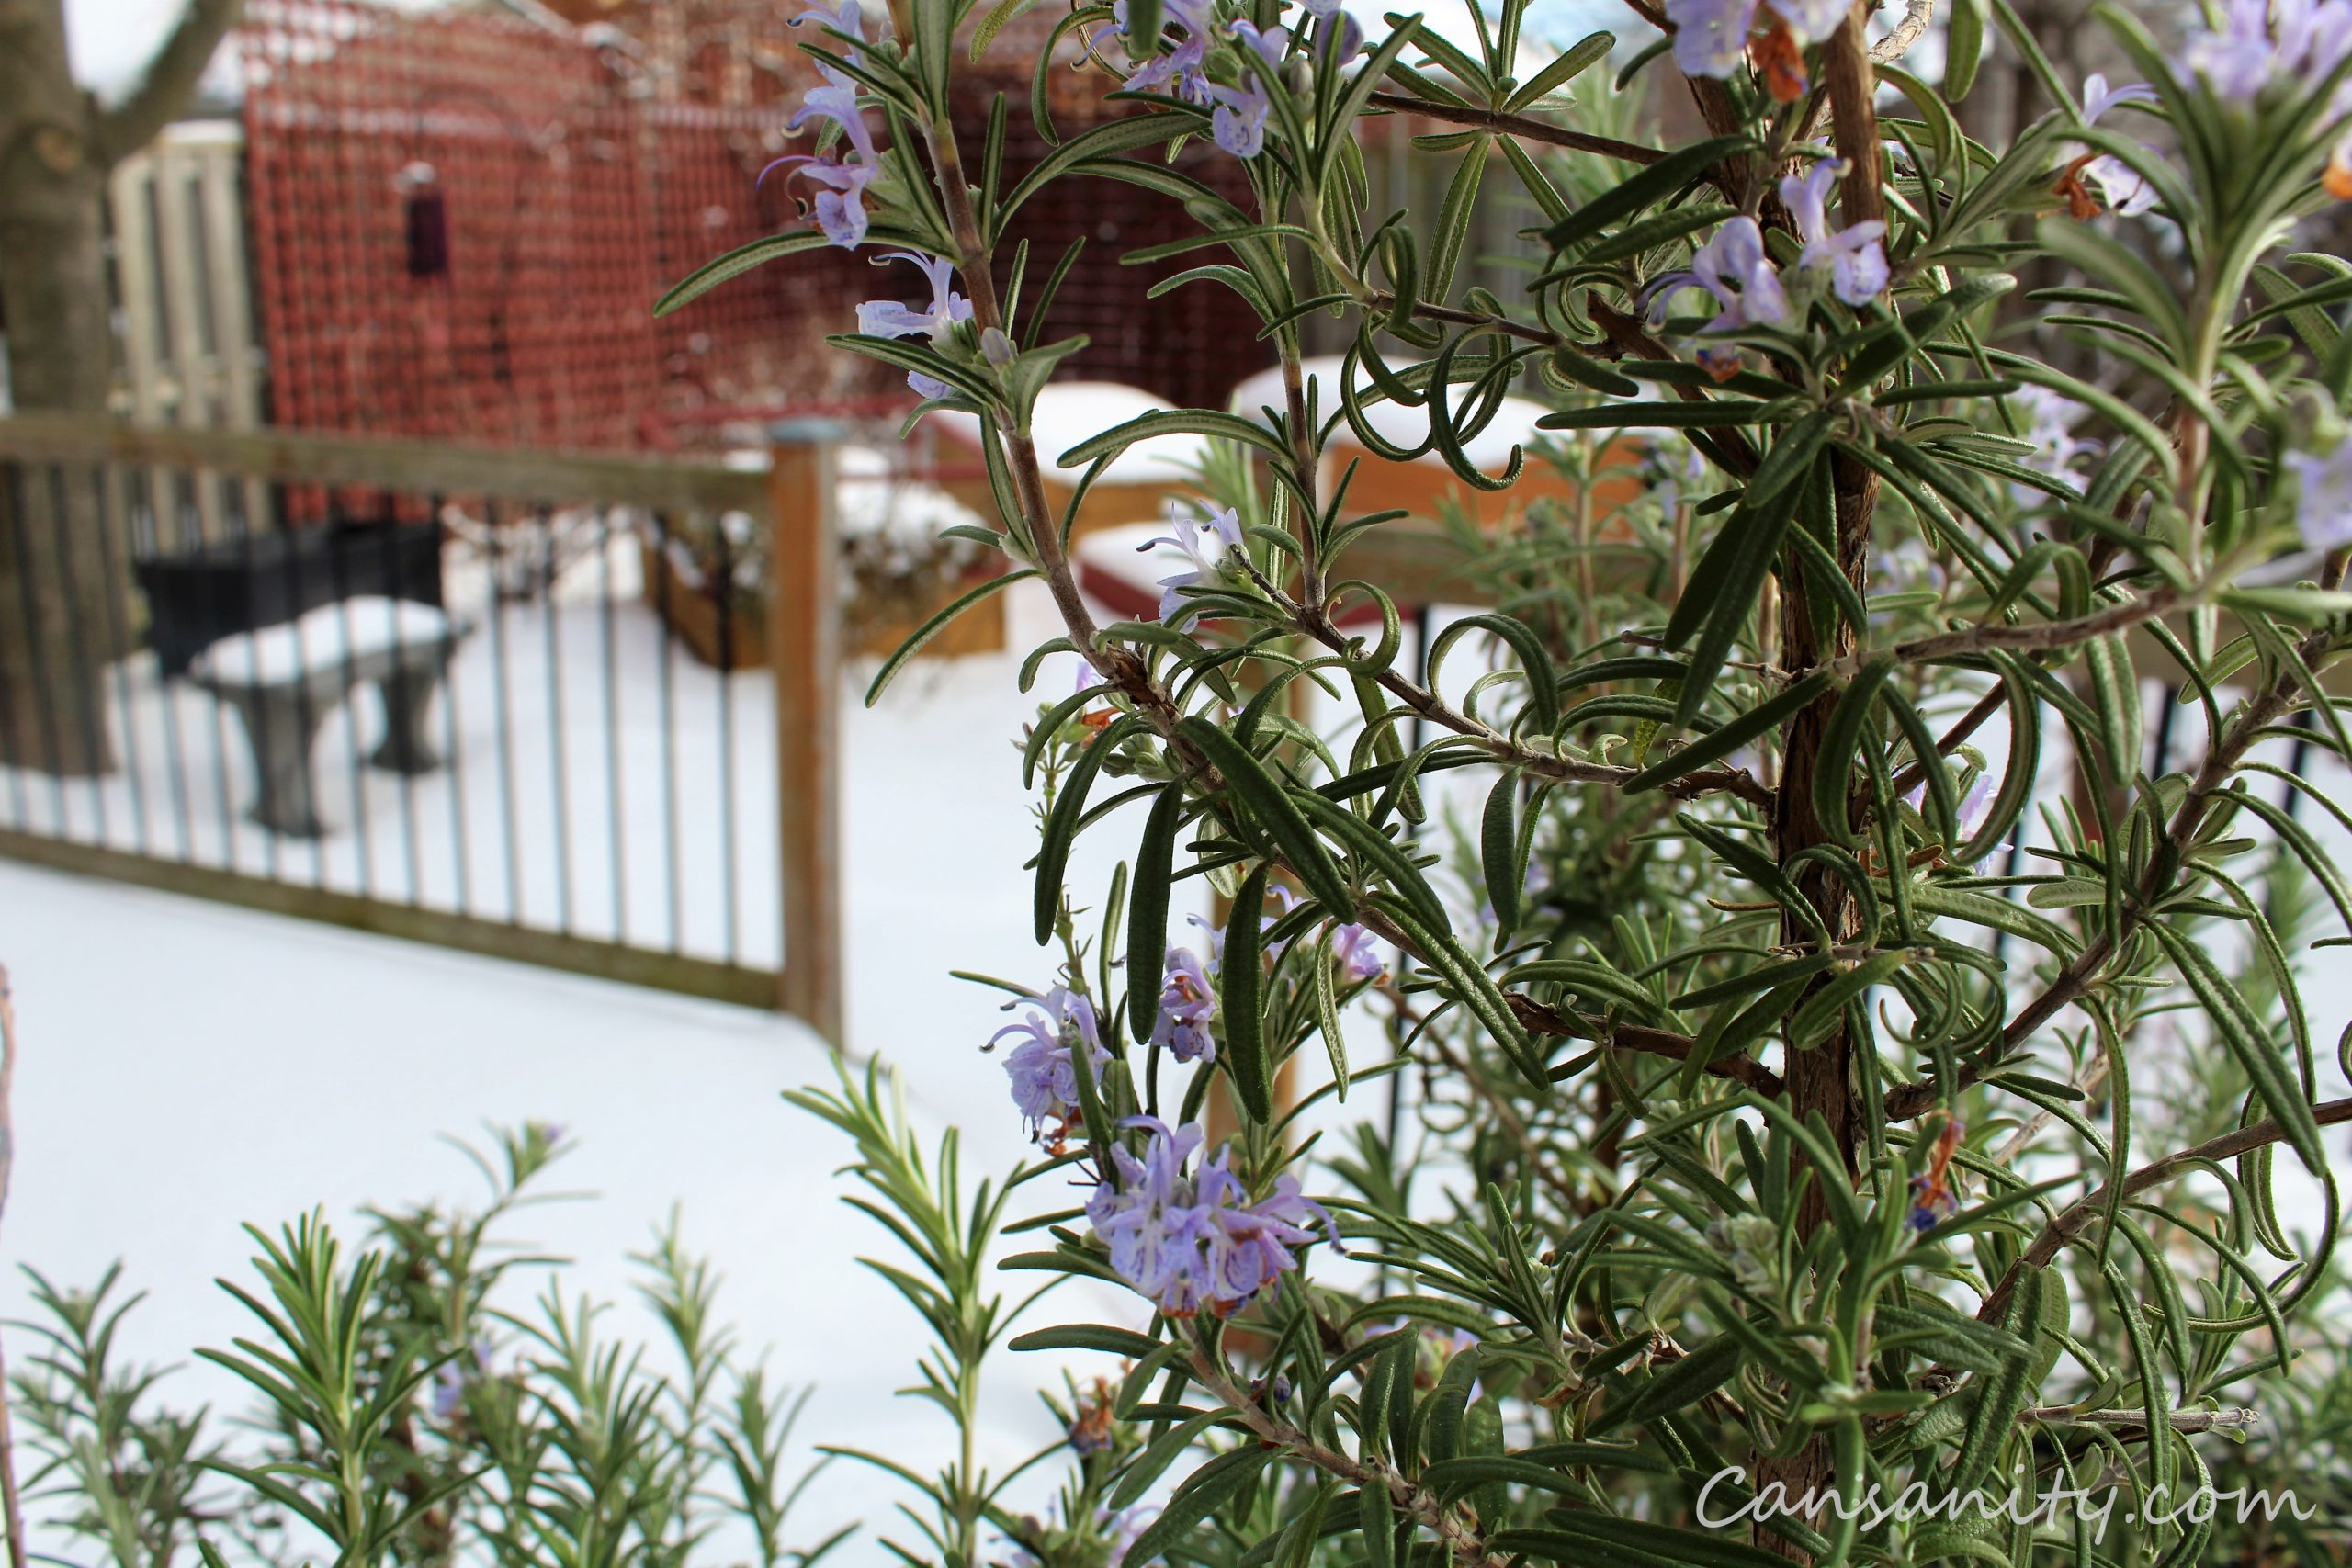 Rosemary blooming in winter 2021